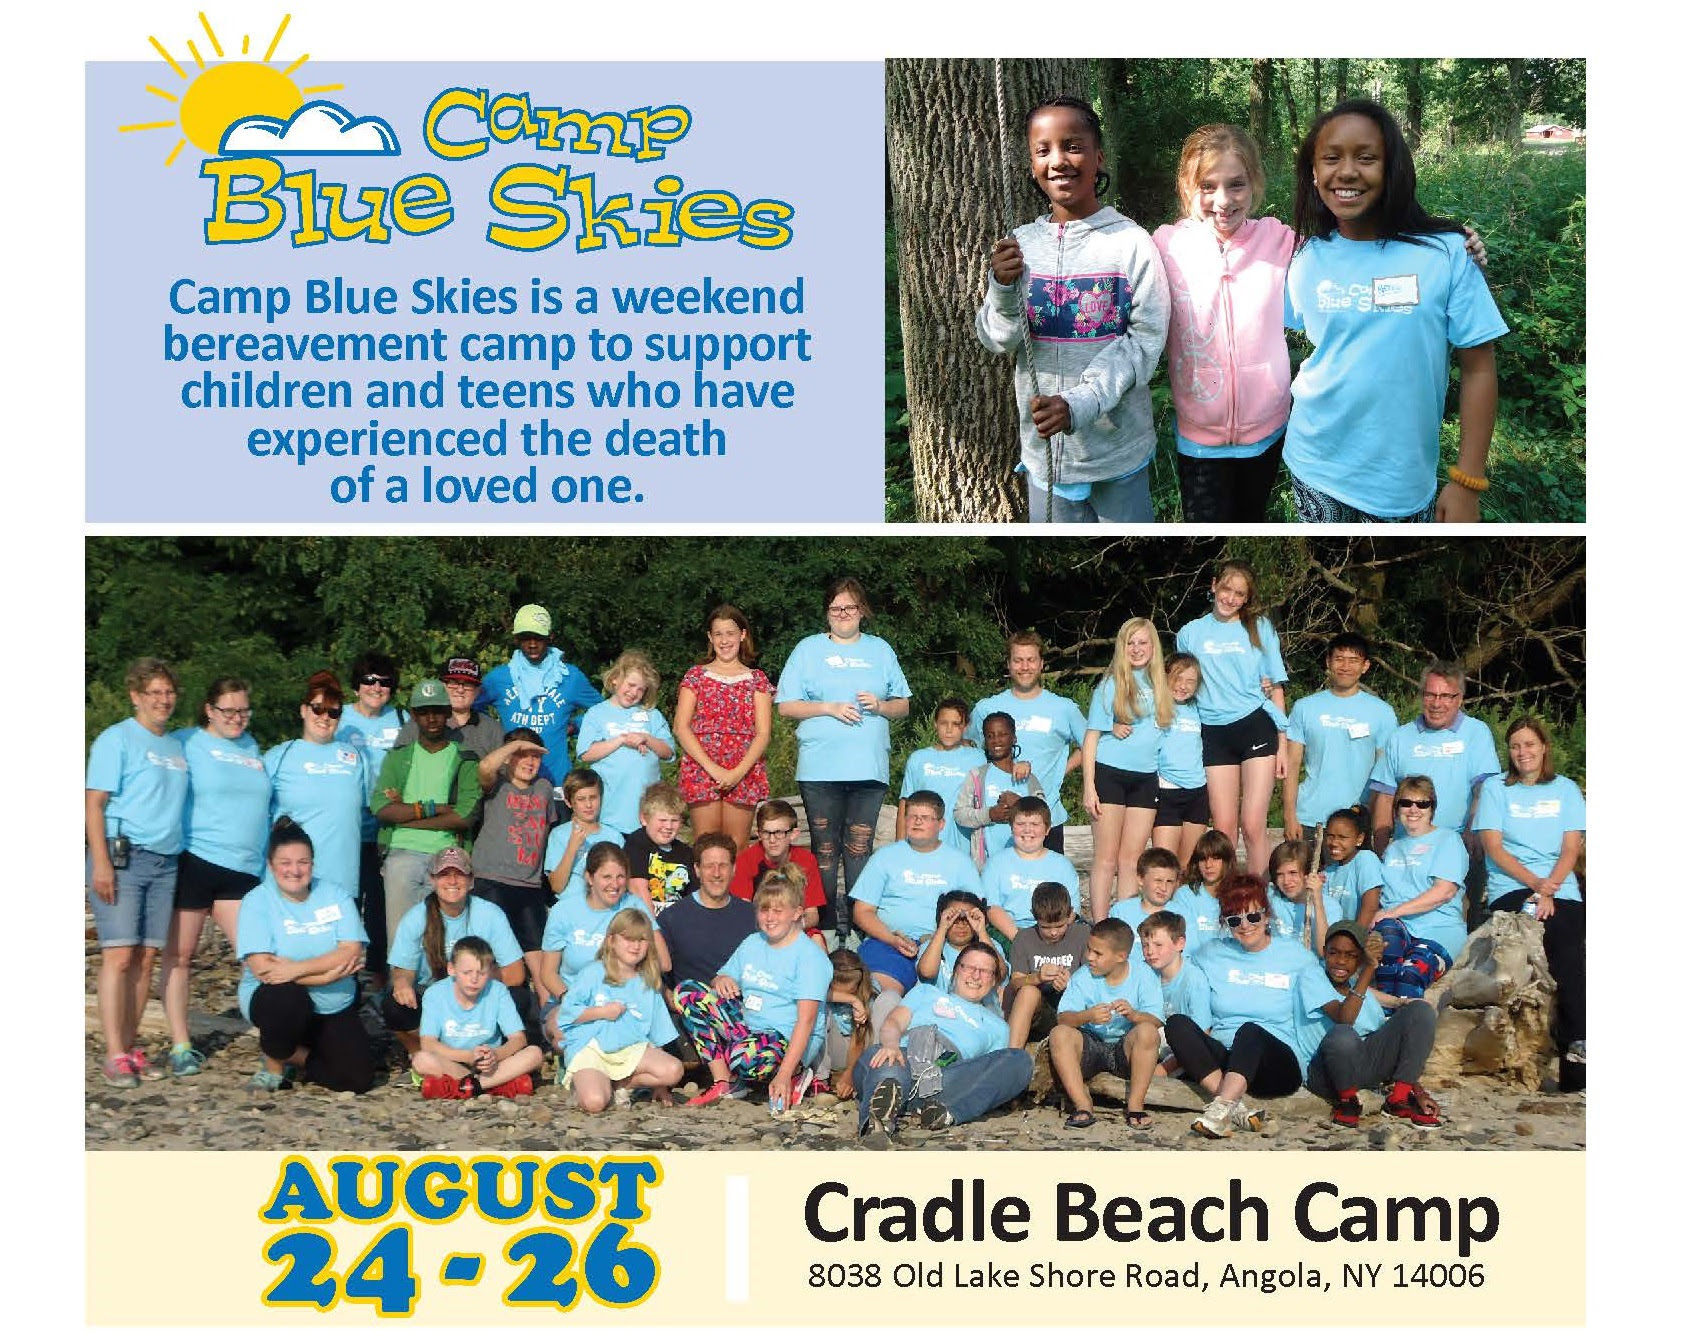 2018 Camp Flyer cropped.jpg